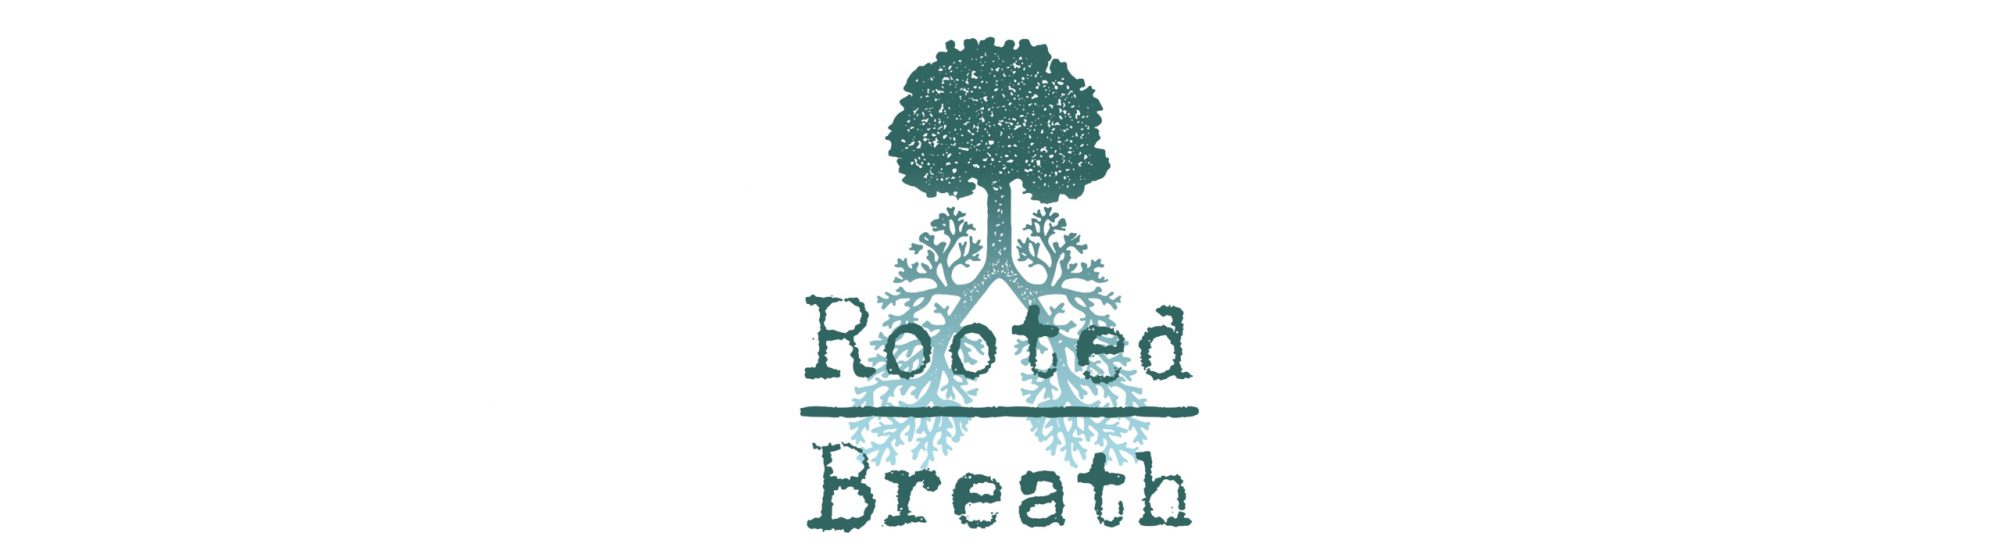 cropped-rootedbreath_fullcolor_l-wide-smaller6.jpg